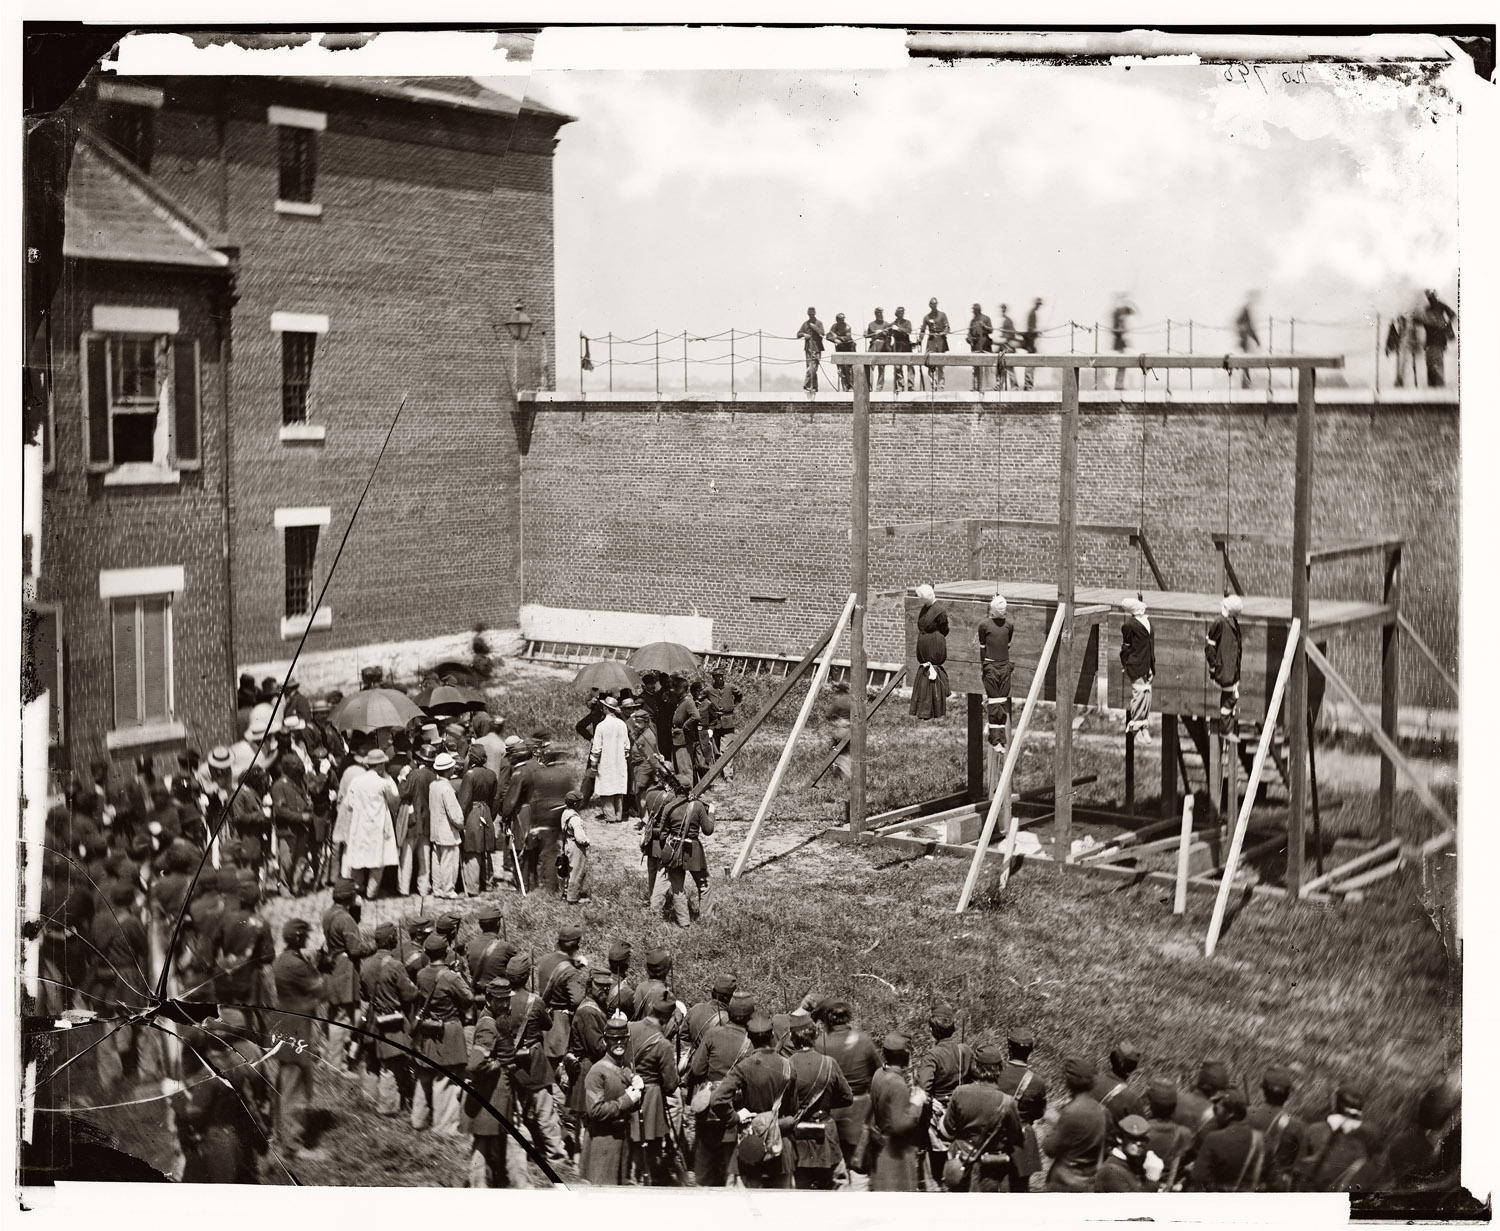 The Assassination Conspirators Hanged